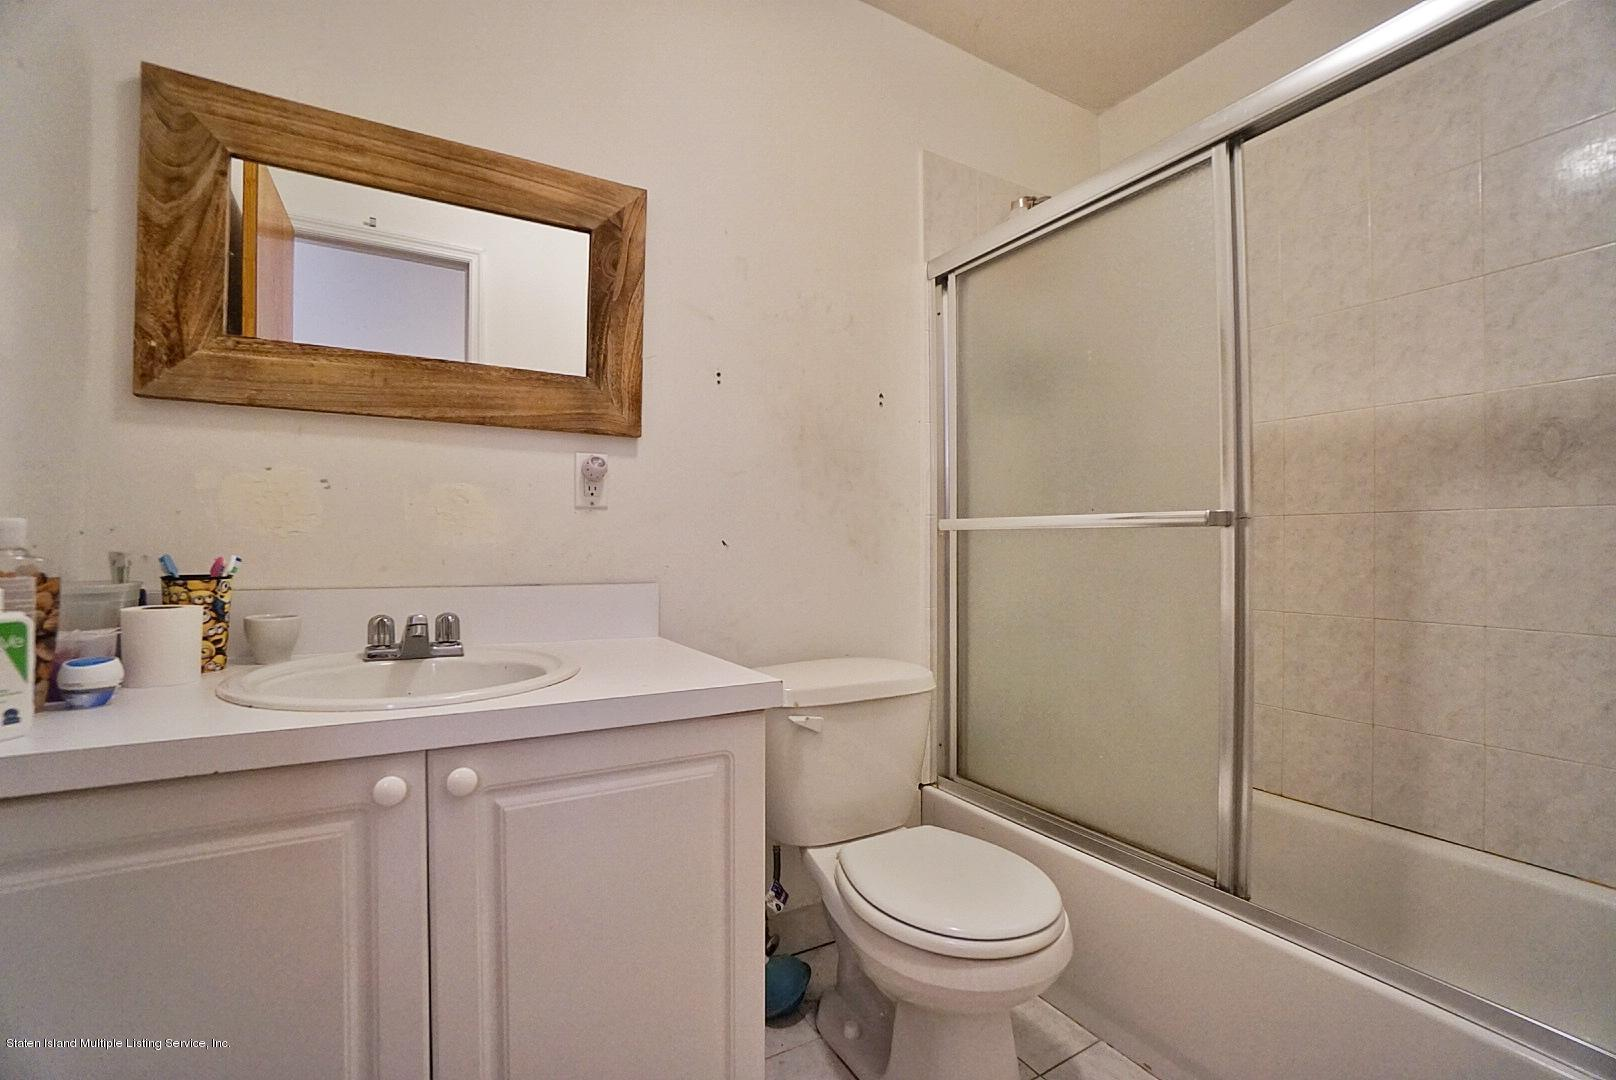 Two Family - Detached 114 Winter Avenue  Staten Island, NY 10301, MLS-1122024-20